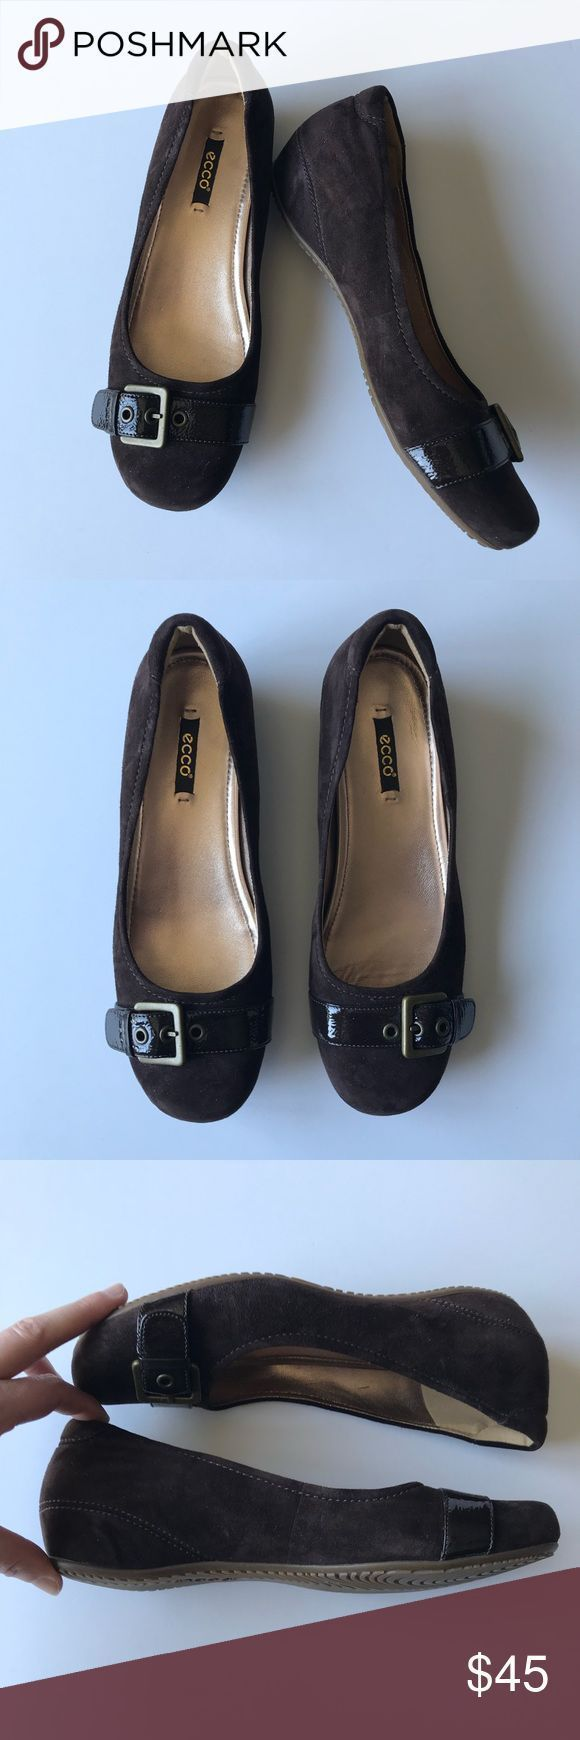 Ecco Brown Suede Buckle Ballet Flat Size 39 Ecco coffee espresso dark brown sued…